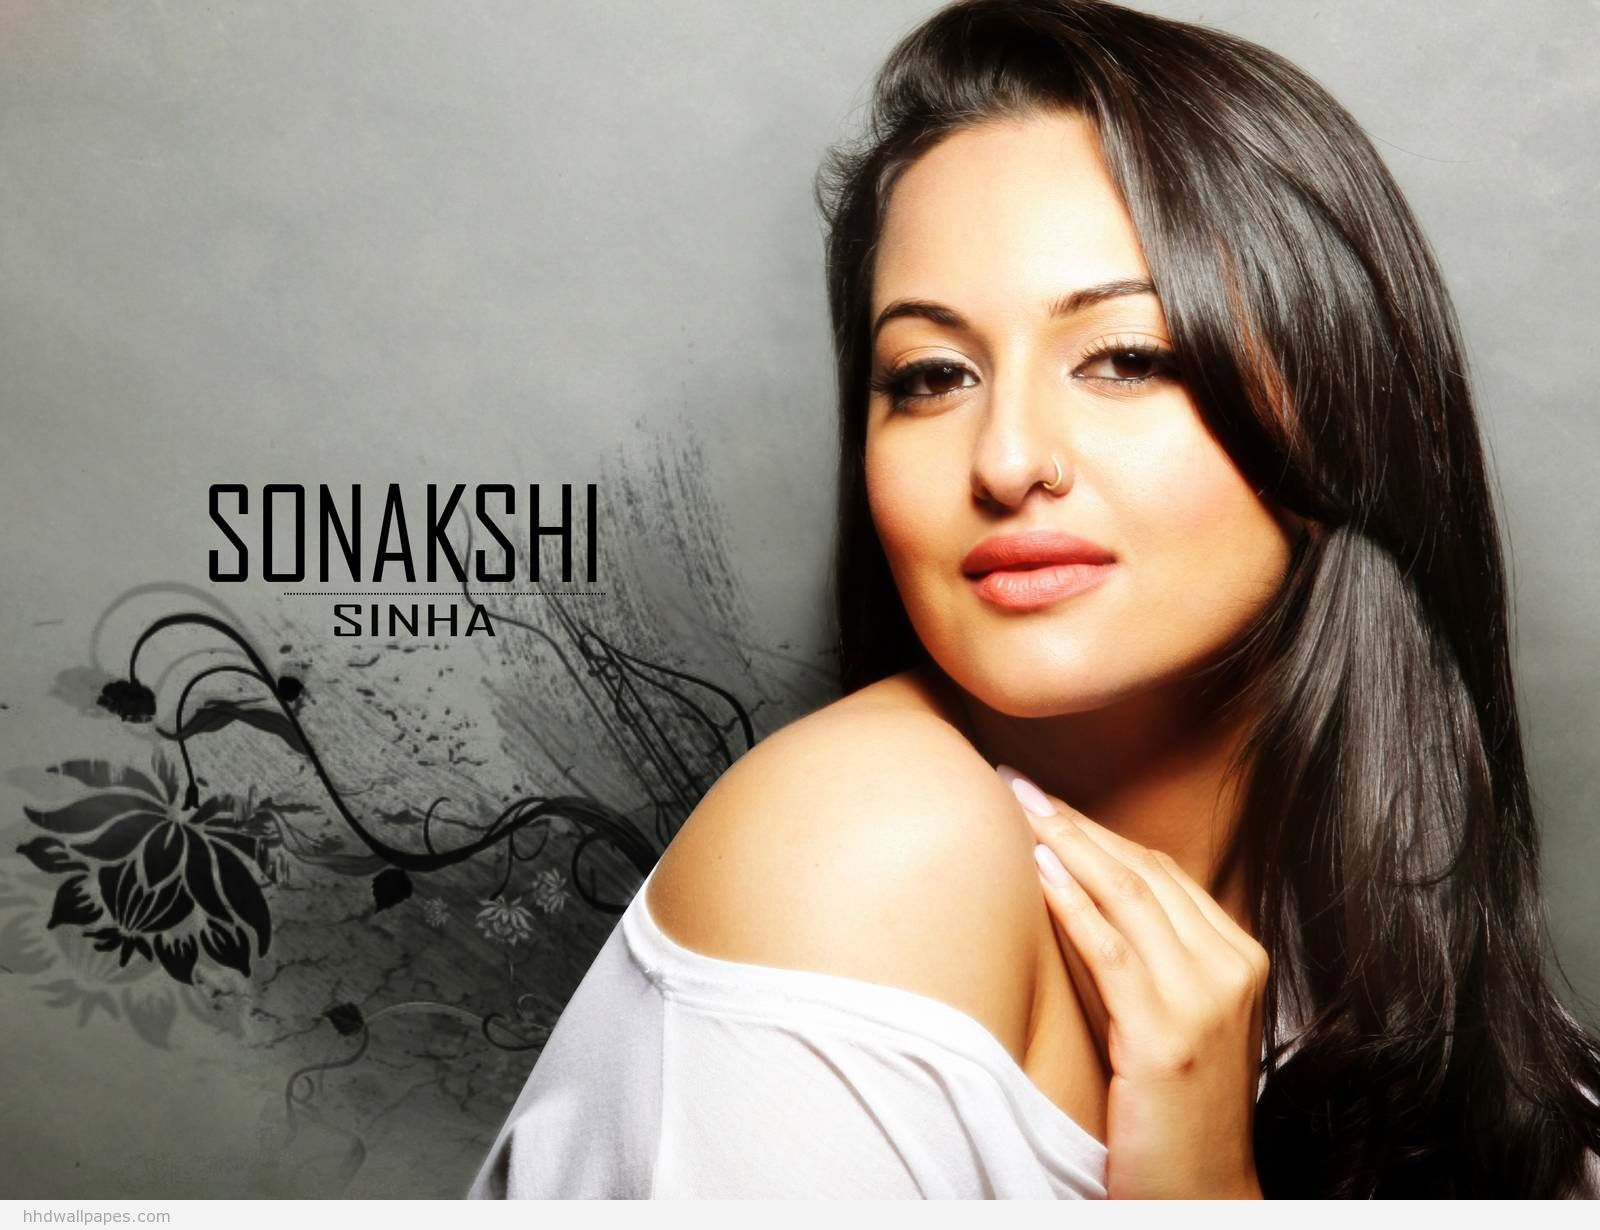 Sonakshi Sinha Wallpapers 2014